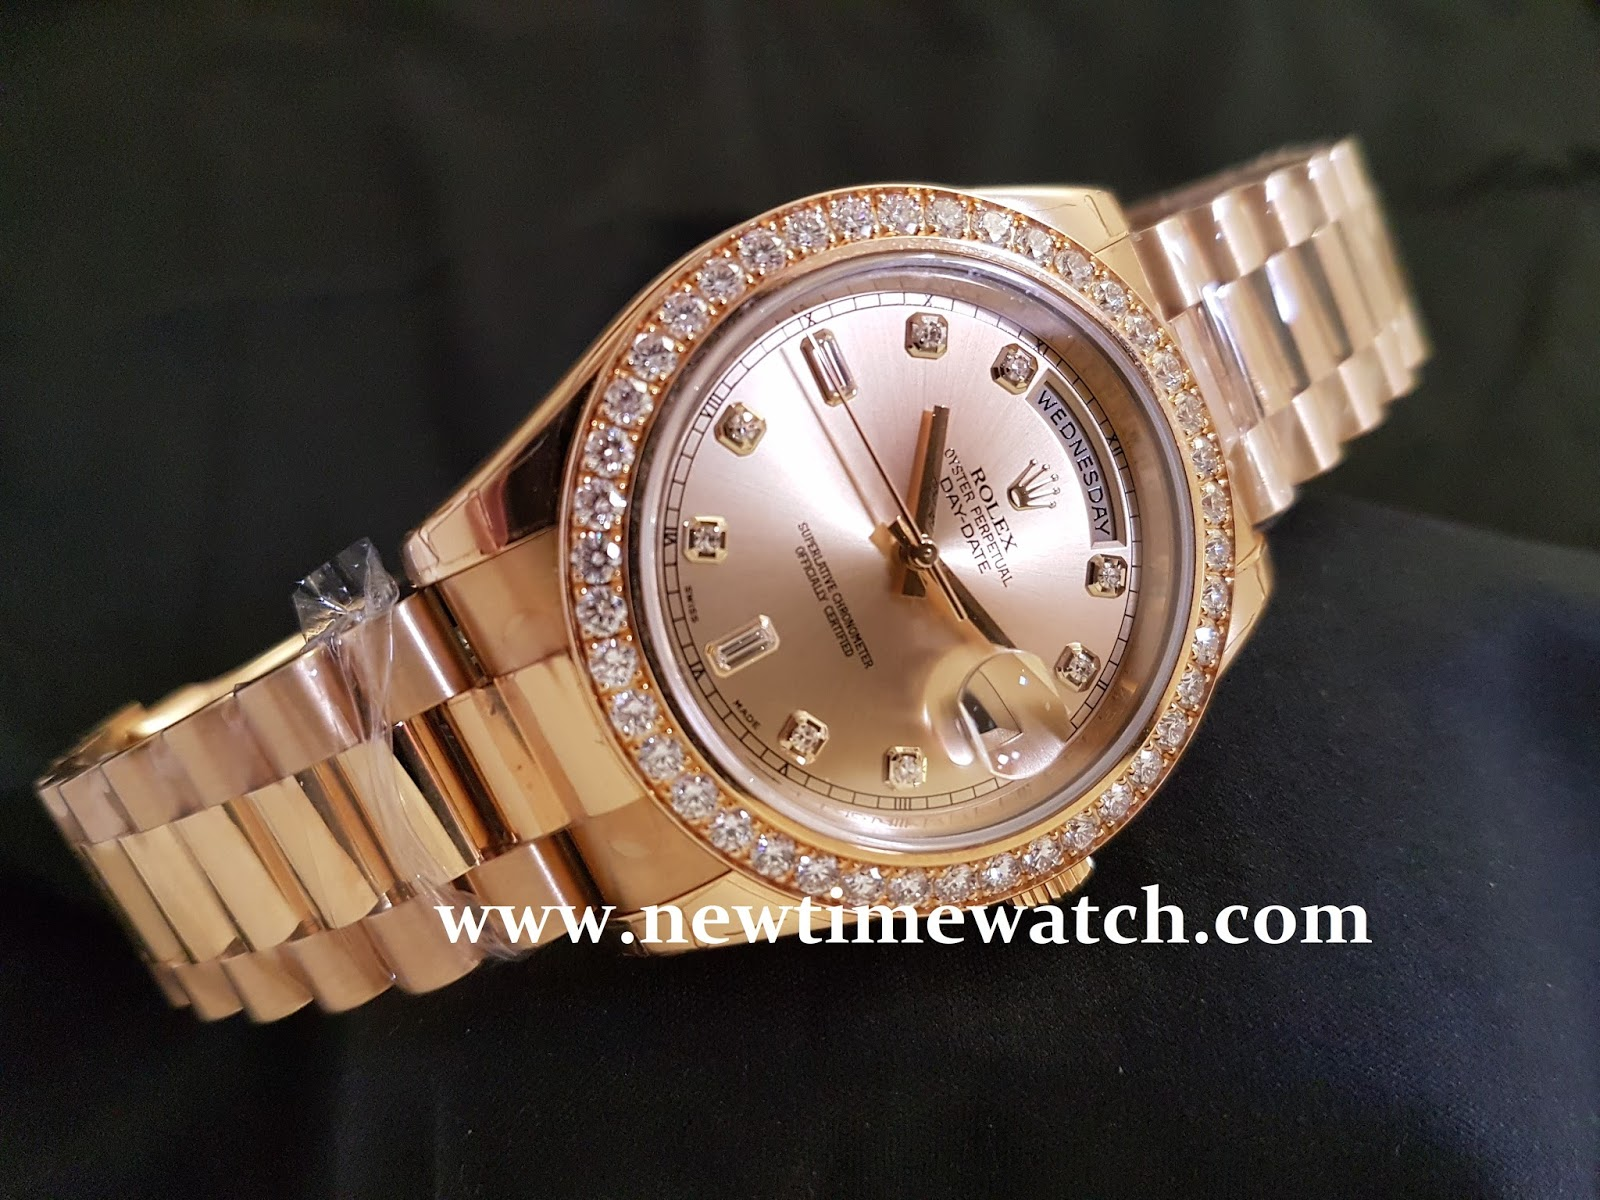 Jual Jam Rolex Gold Original Welcome To Tangan Pria Expedition 6631 Black Yellow Triple Time Sold Daydate Ii Champagne Dial With Index Diamond And Ring 218348 Brand New